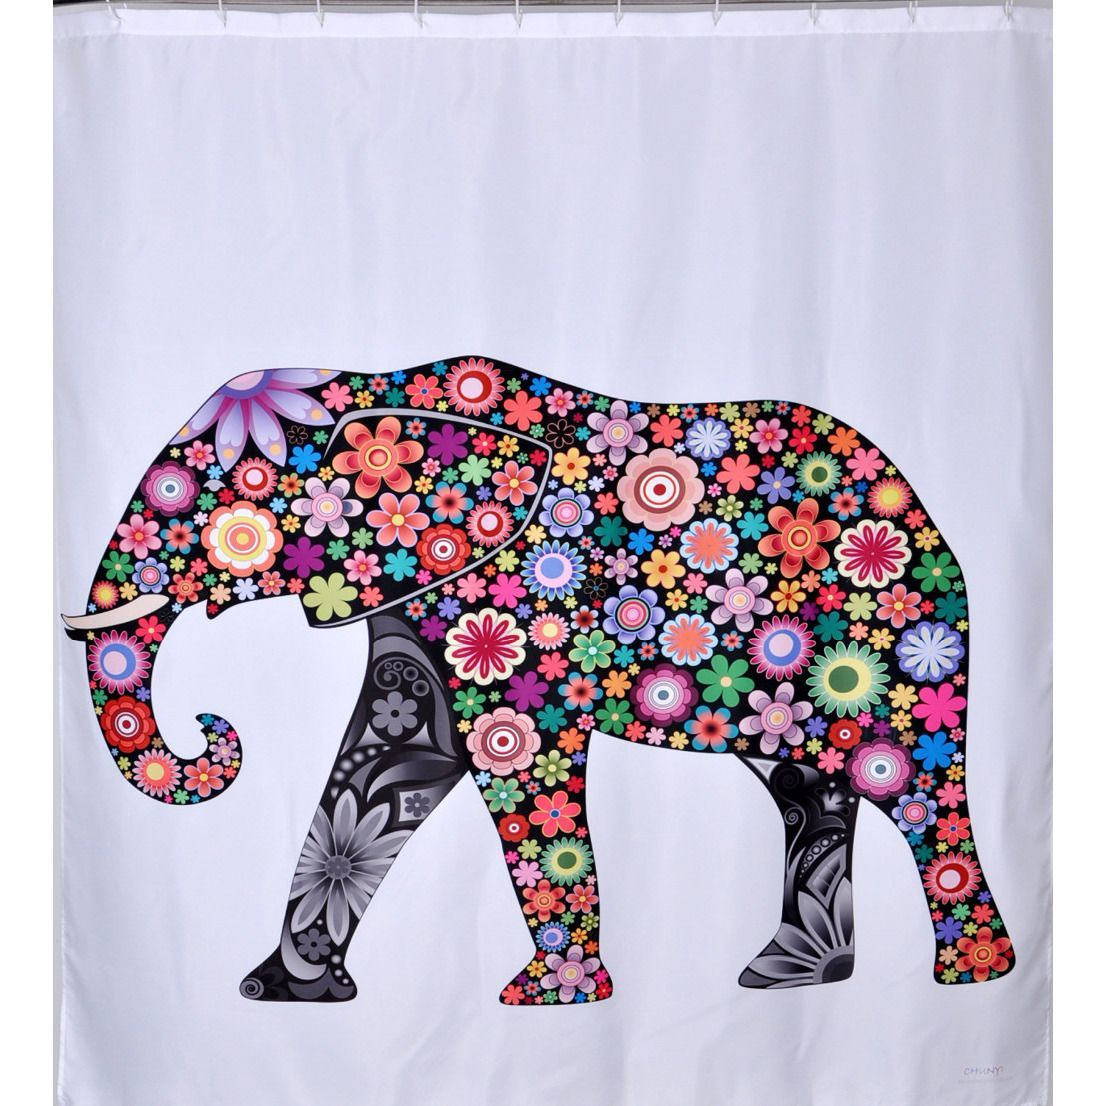 Elephant Shower Curtain Elephant Shower Curtains Printed Shower